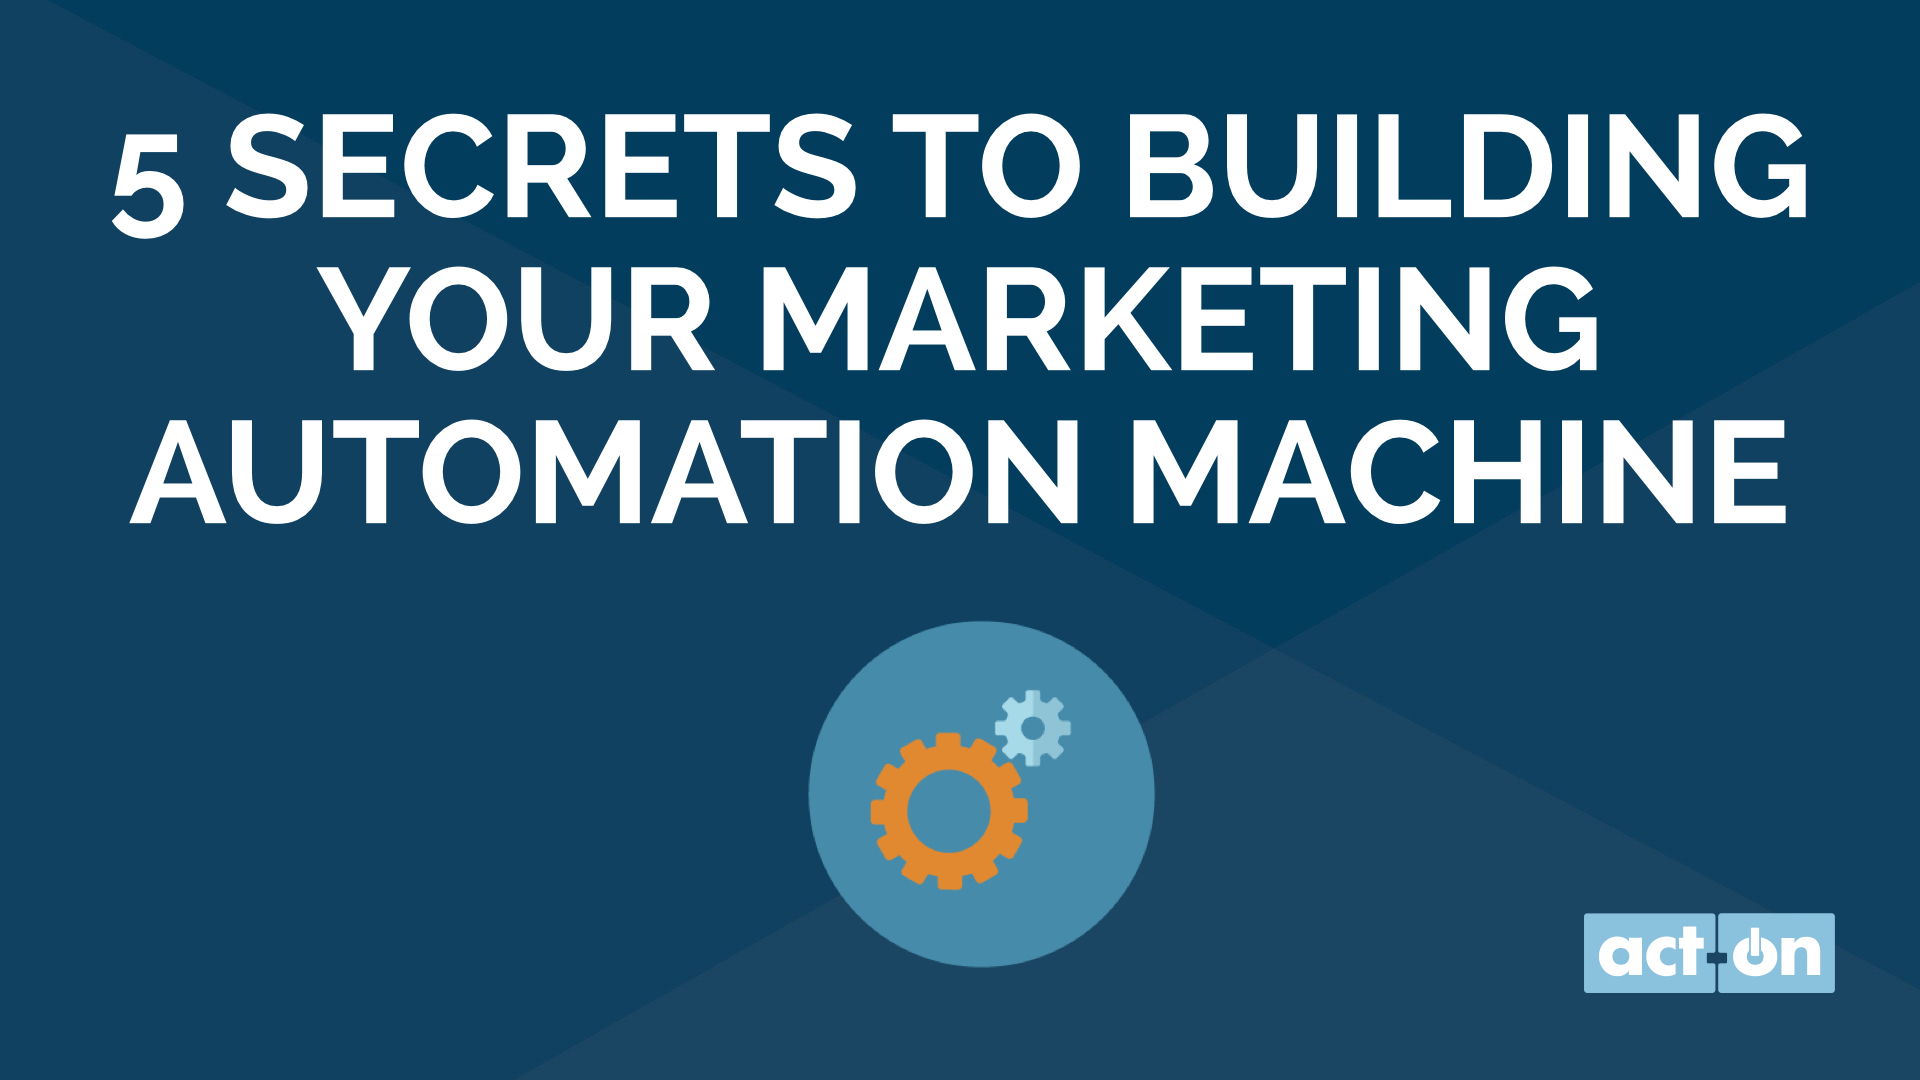 5 Secrets to Building Your Marketing Automation Machine